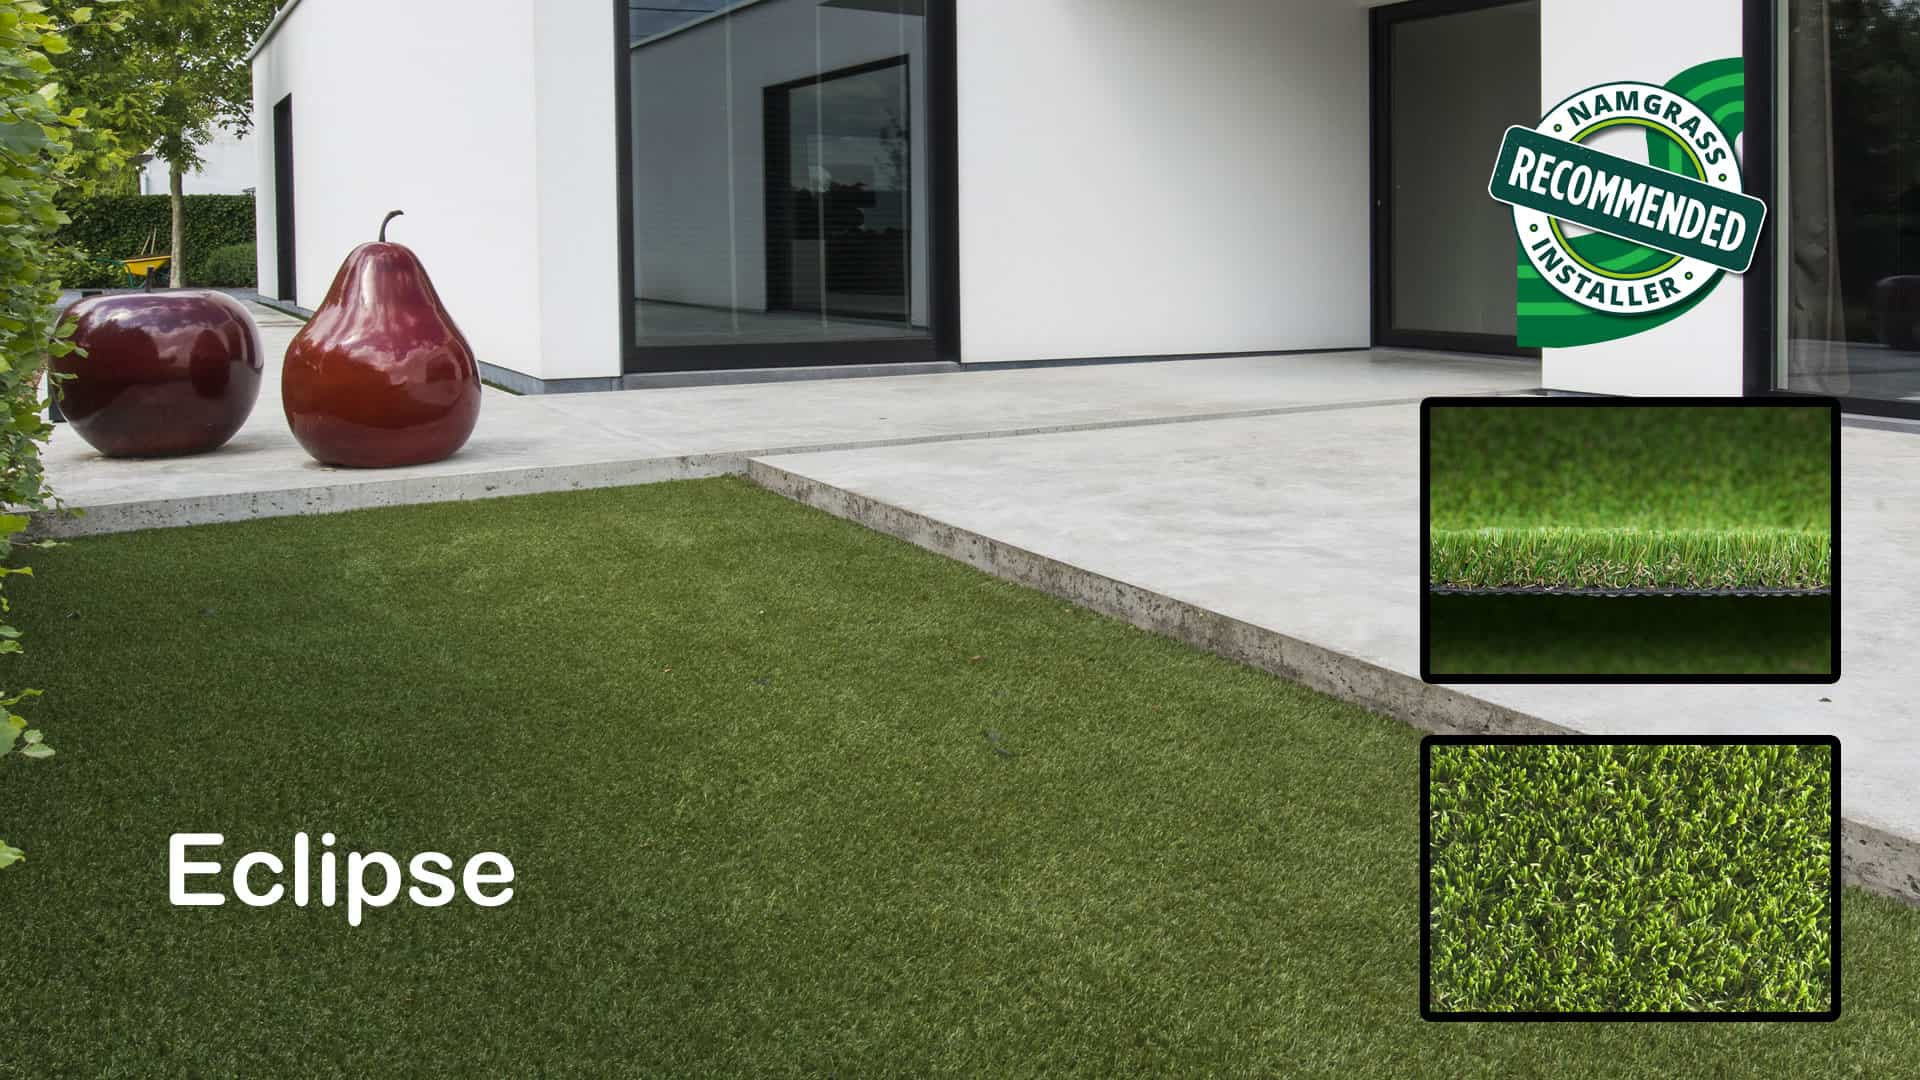 Eclipse Namgrass artificial grass